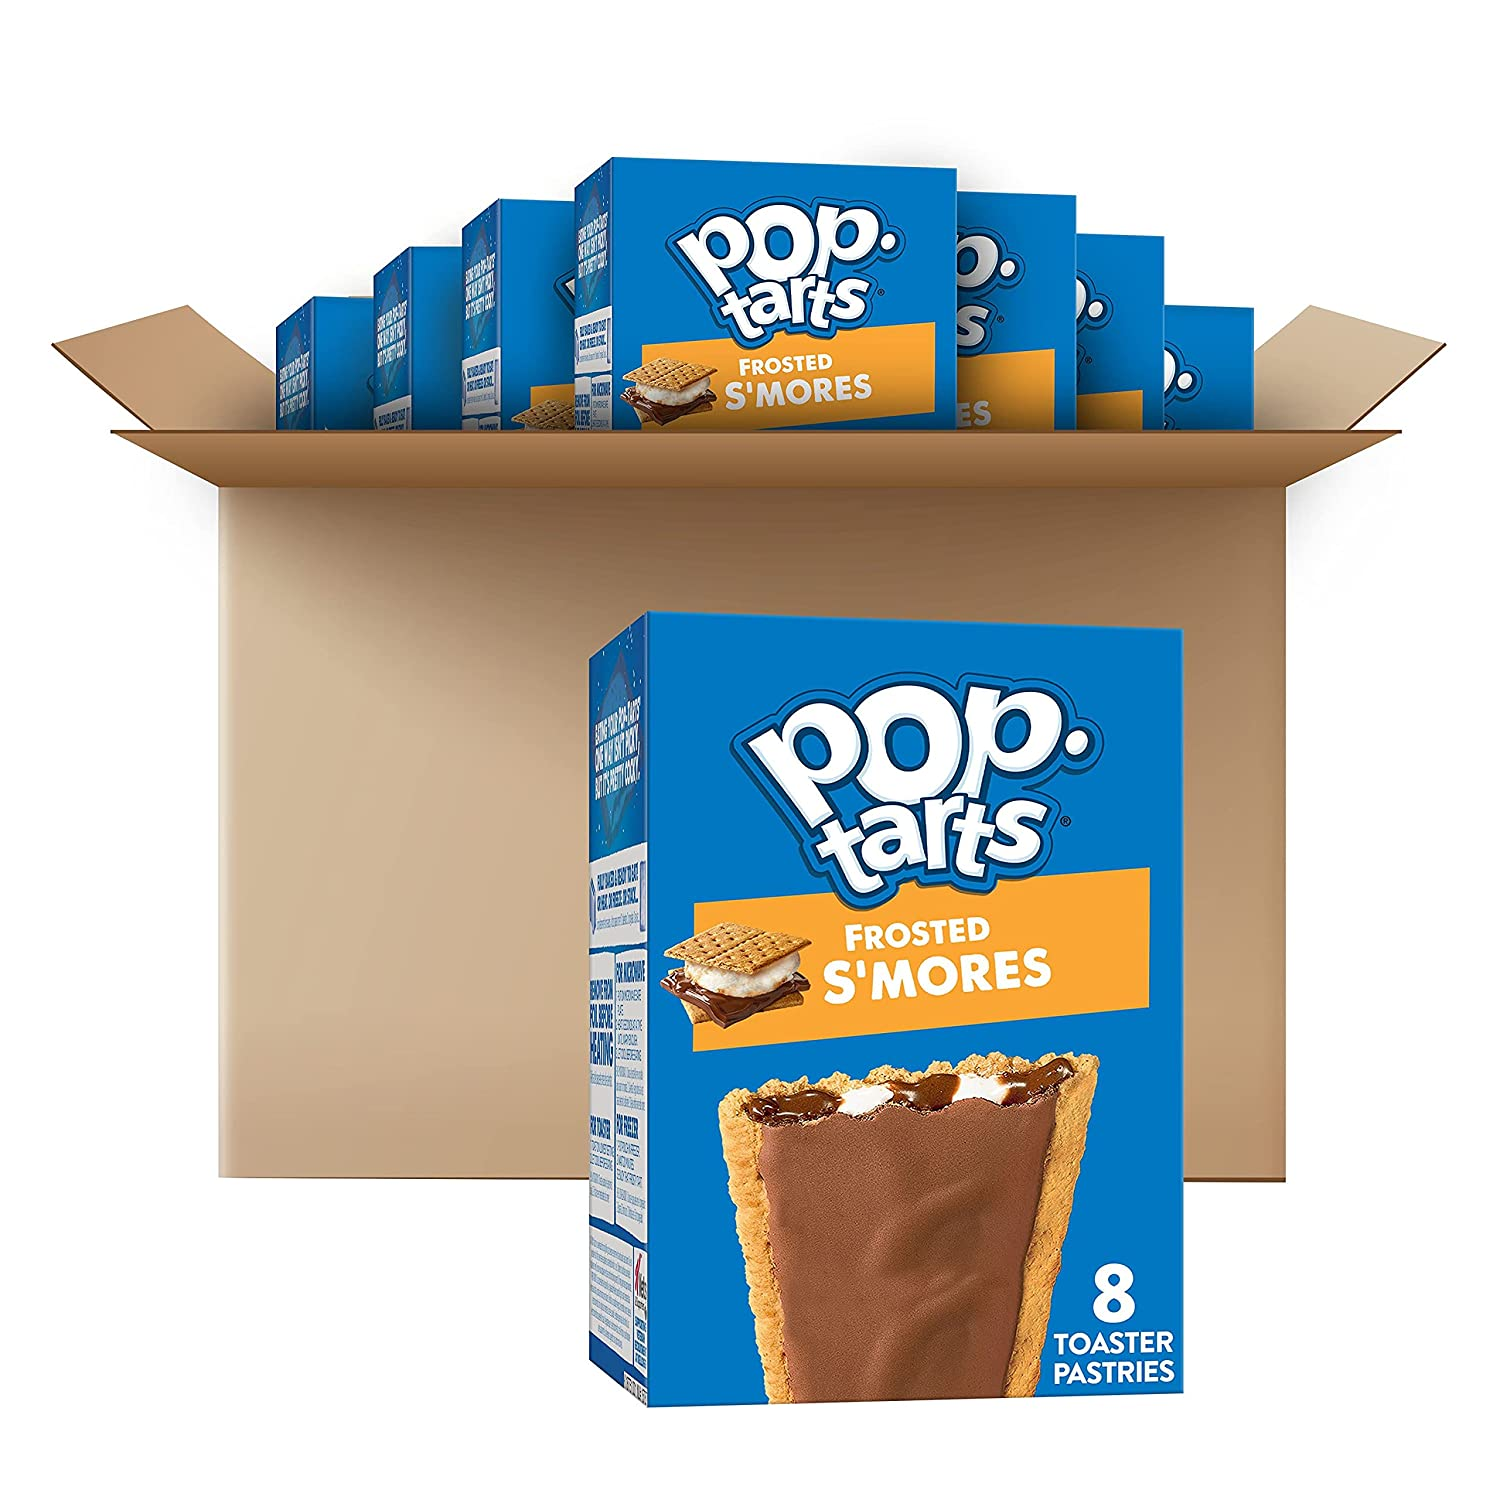 Kellogg's Pop-Tarts Frosted S'mores Toaster Pastries - Fun Breakfast for Kids, 13.5oz Box (Pack of 8)